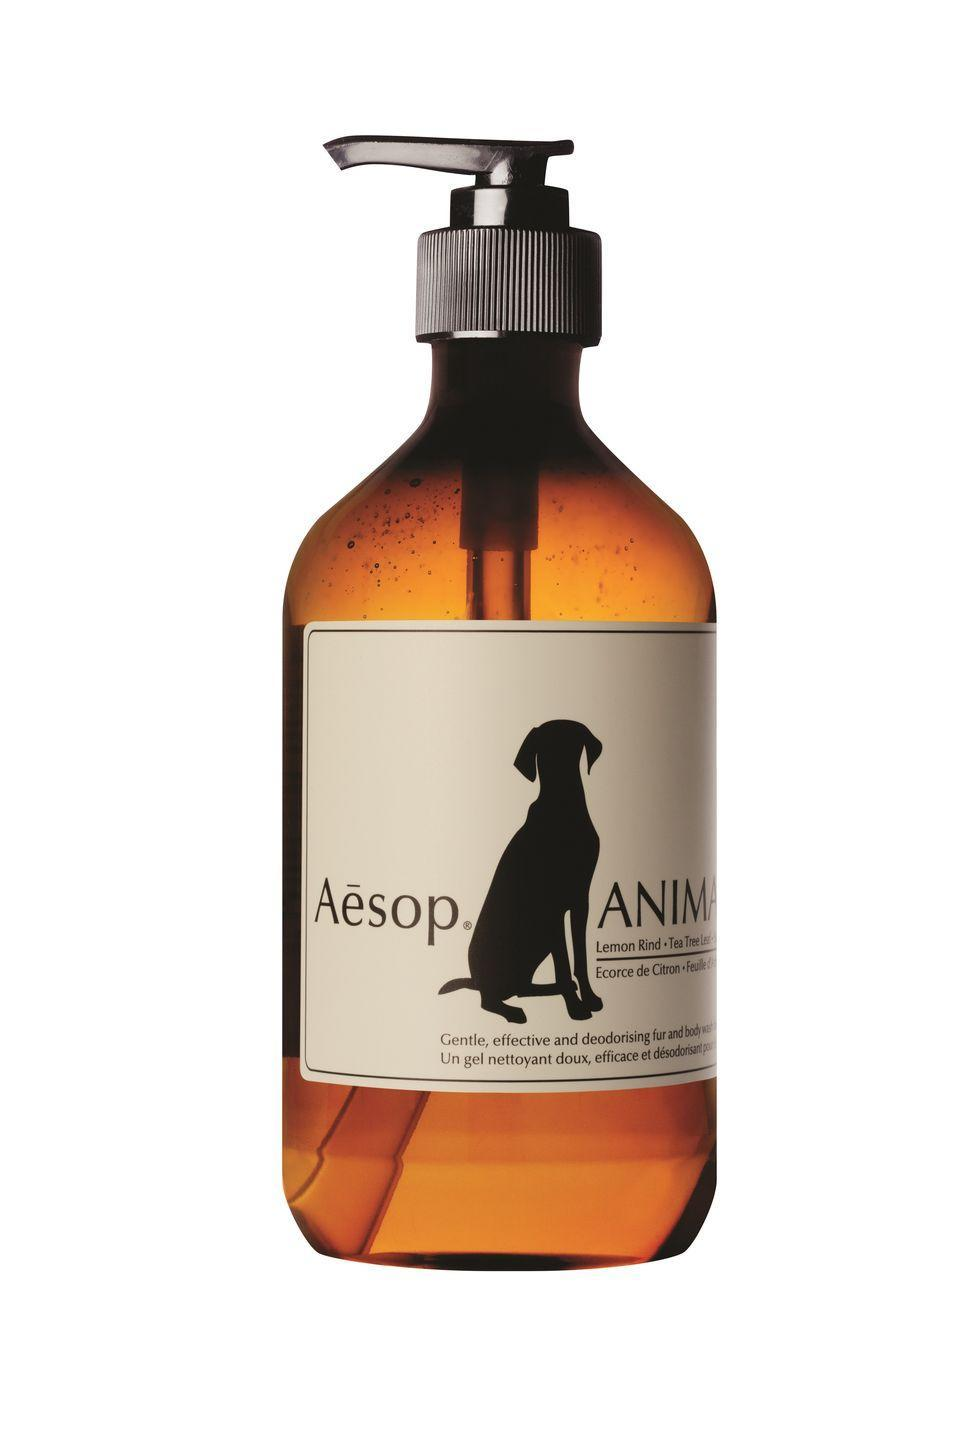 """<p>Make bath time a treat with Aesop's Animal Body Wash. Enriched with lemon rind, tea-tree leaf and cooling spearmint, this mild cleanser removes dirt thoroughly yet gently, while calming sensitive skin and leaving fur smelling divine.</p><p>£27, <a href=""""https://www.aesop.com/uk/p/home/home-formulations/animal/?variant=ABS09RF&gclid=EAIaIQobChMI3p7k_O_A7AIV2t_tCh2REQGZEAQYAyABEgJKdfD_BwE&gclsrc=aw.ds"""" rel=""""nofollow noopener"""" target=""""_blank"""" data-ylk=""""slk:Aesop"""" class=""""link rapid-noclick-resp"""">Aesop</a>.</p>"""